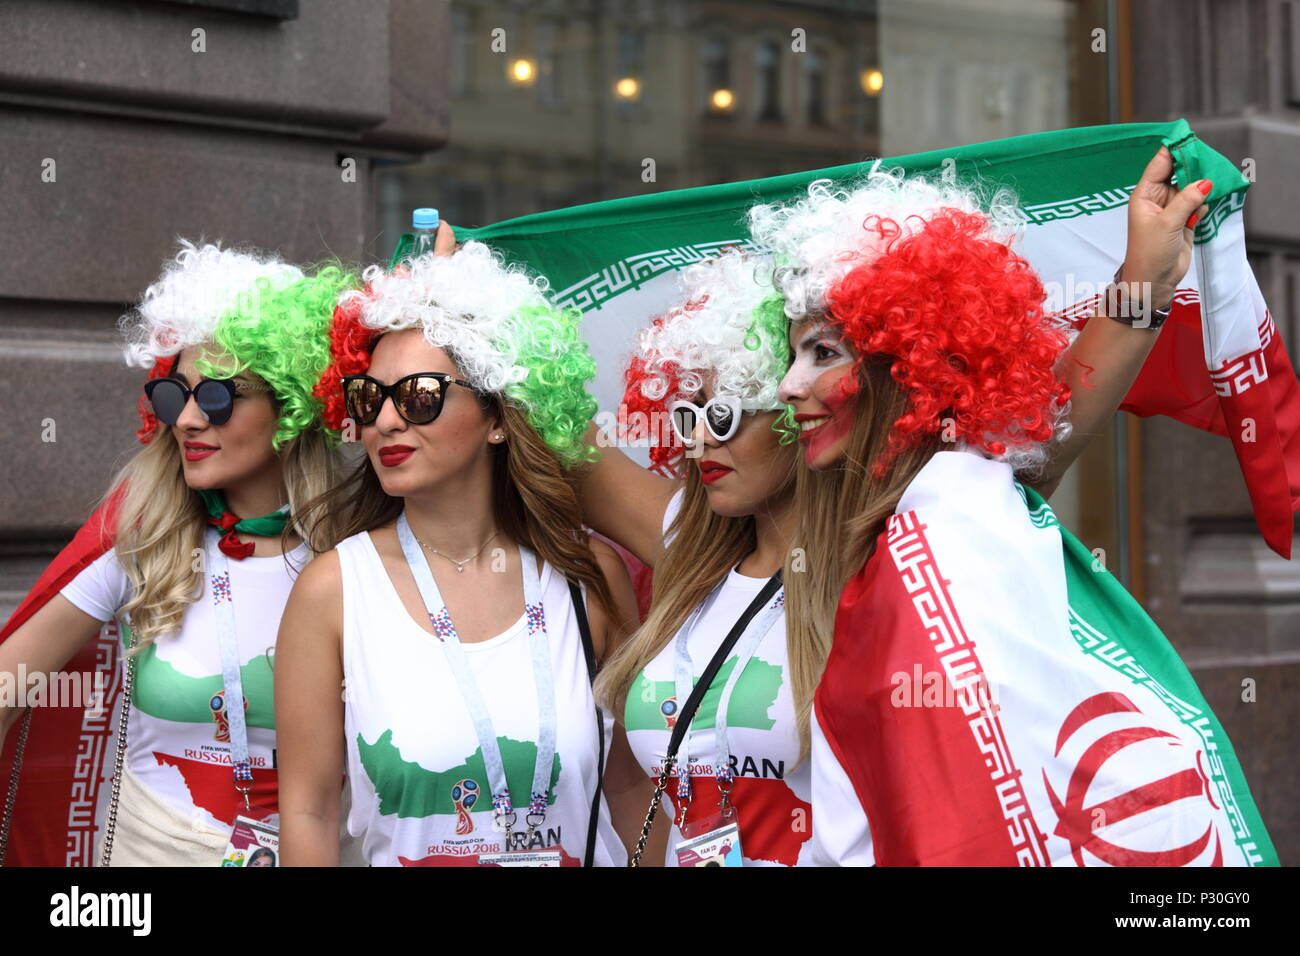 St. Petersburg, Russia - June 15, 2018: Iranian football fans with national flag in Saint Petersburg on the day of first match of FIFA World Cup 2018  - Stock Image